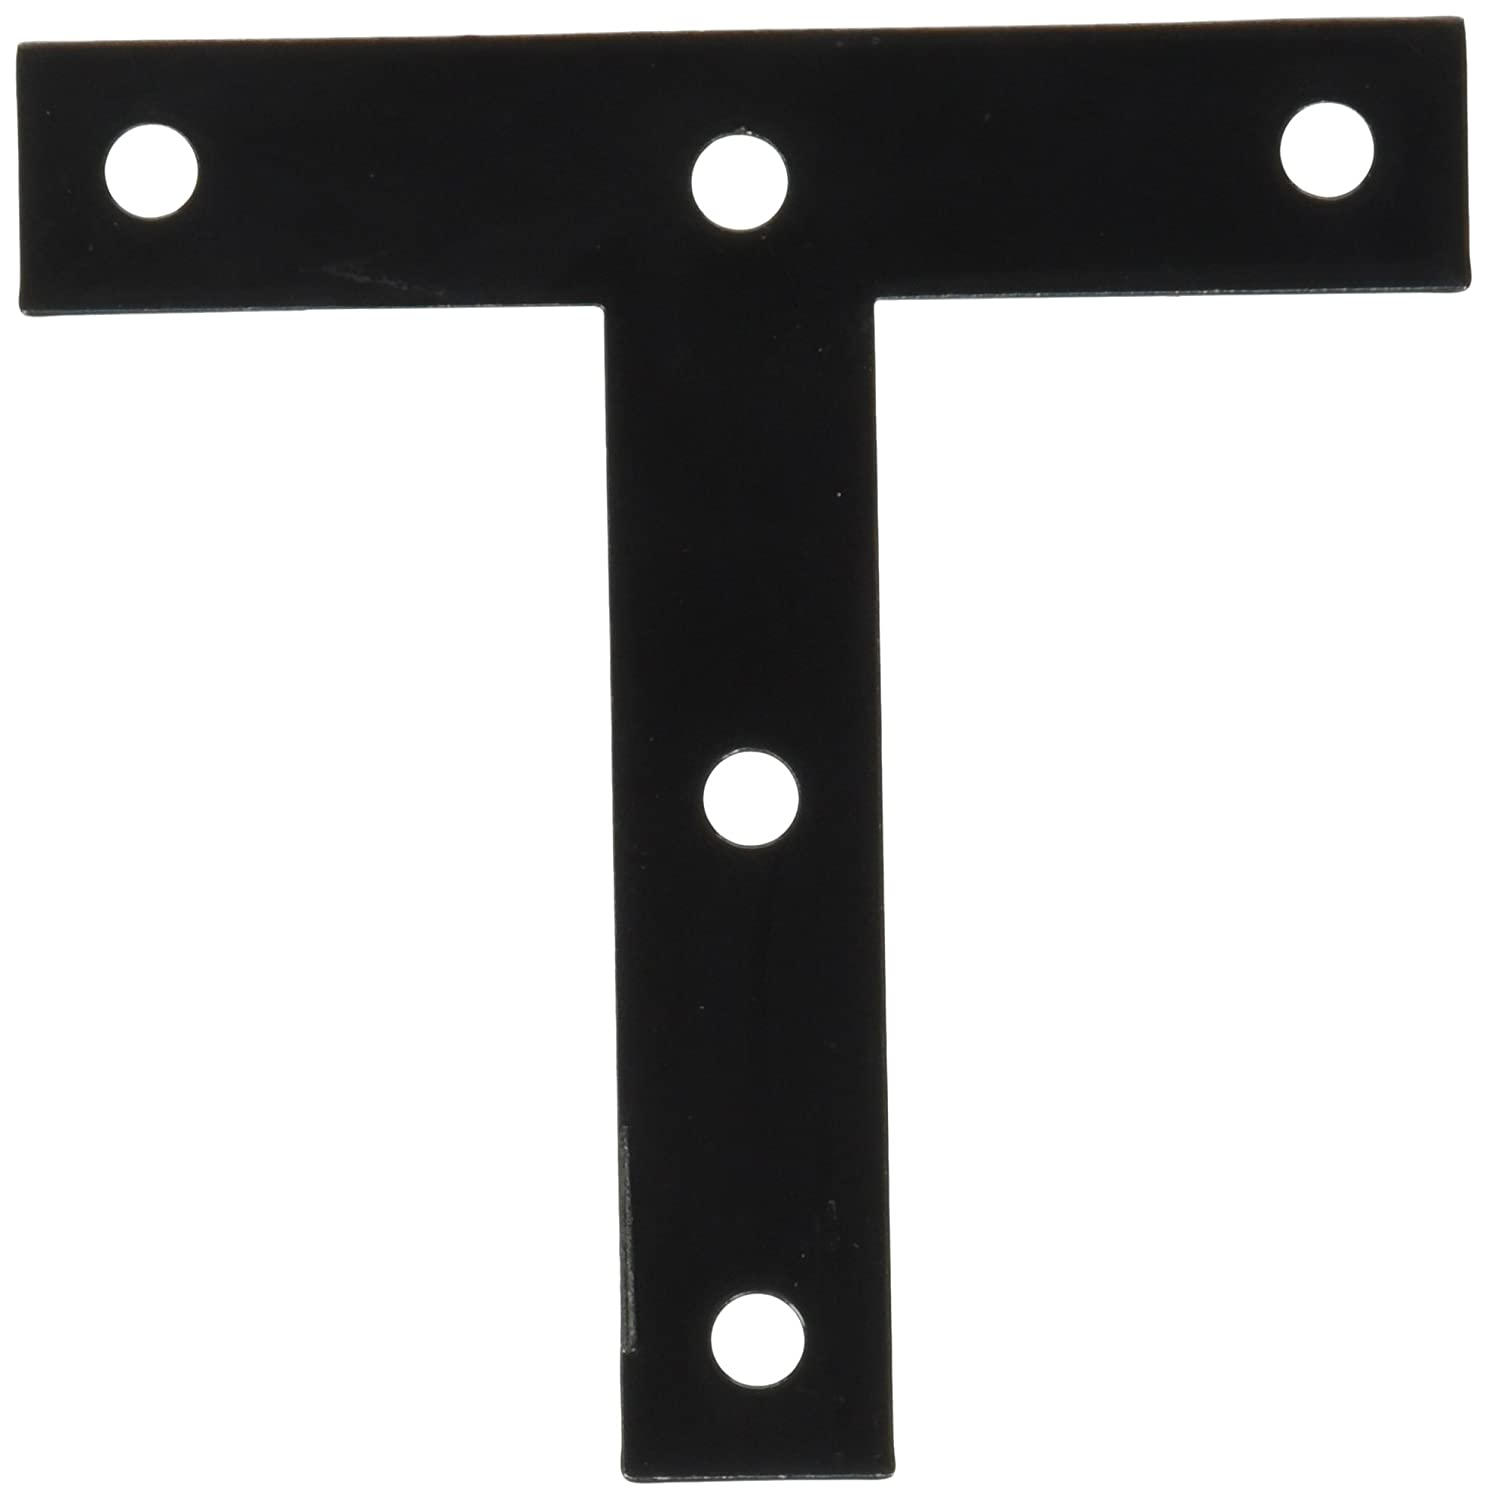 National Hardware N266-470 116BC T Plates in Black finish Stanley Hardware - National Manufacturing